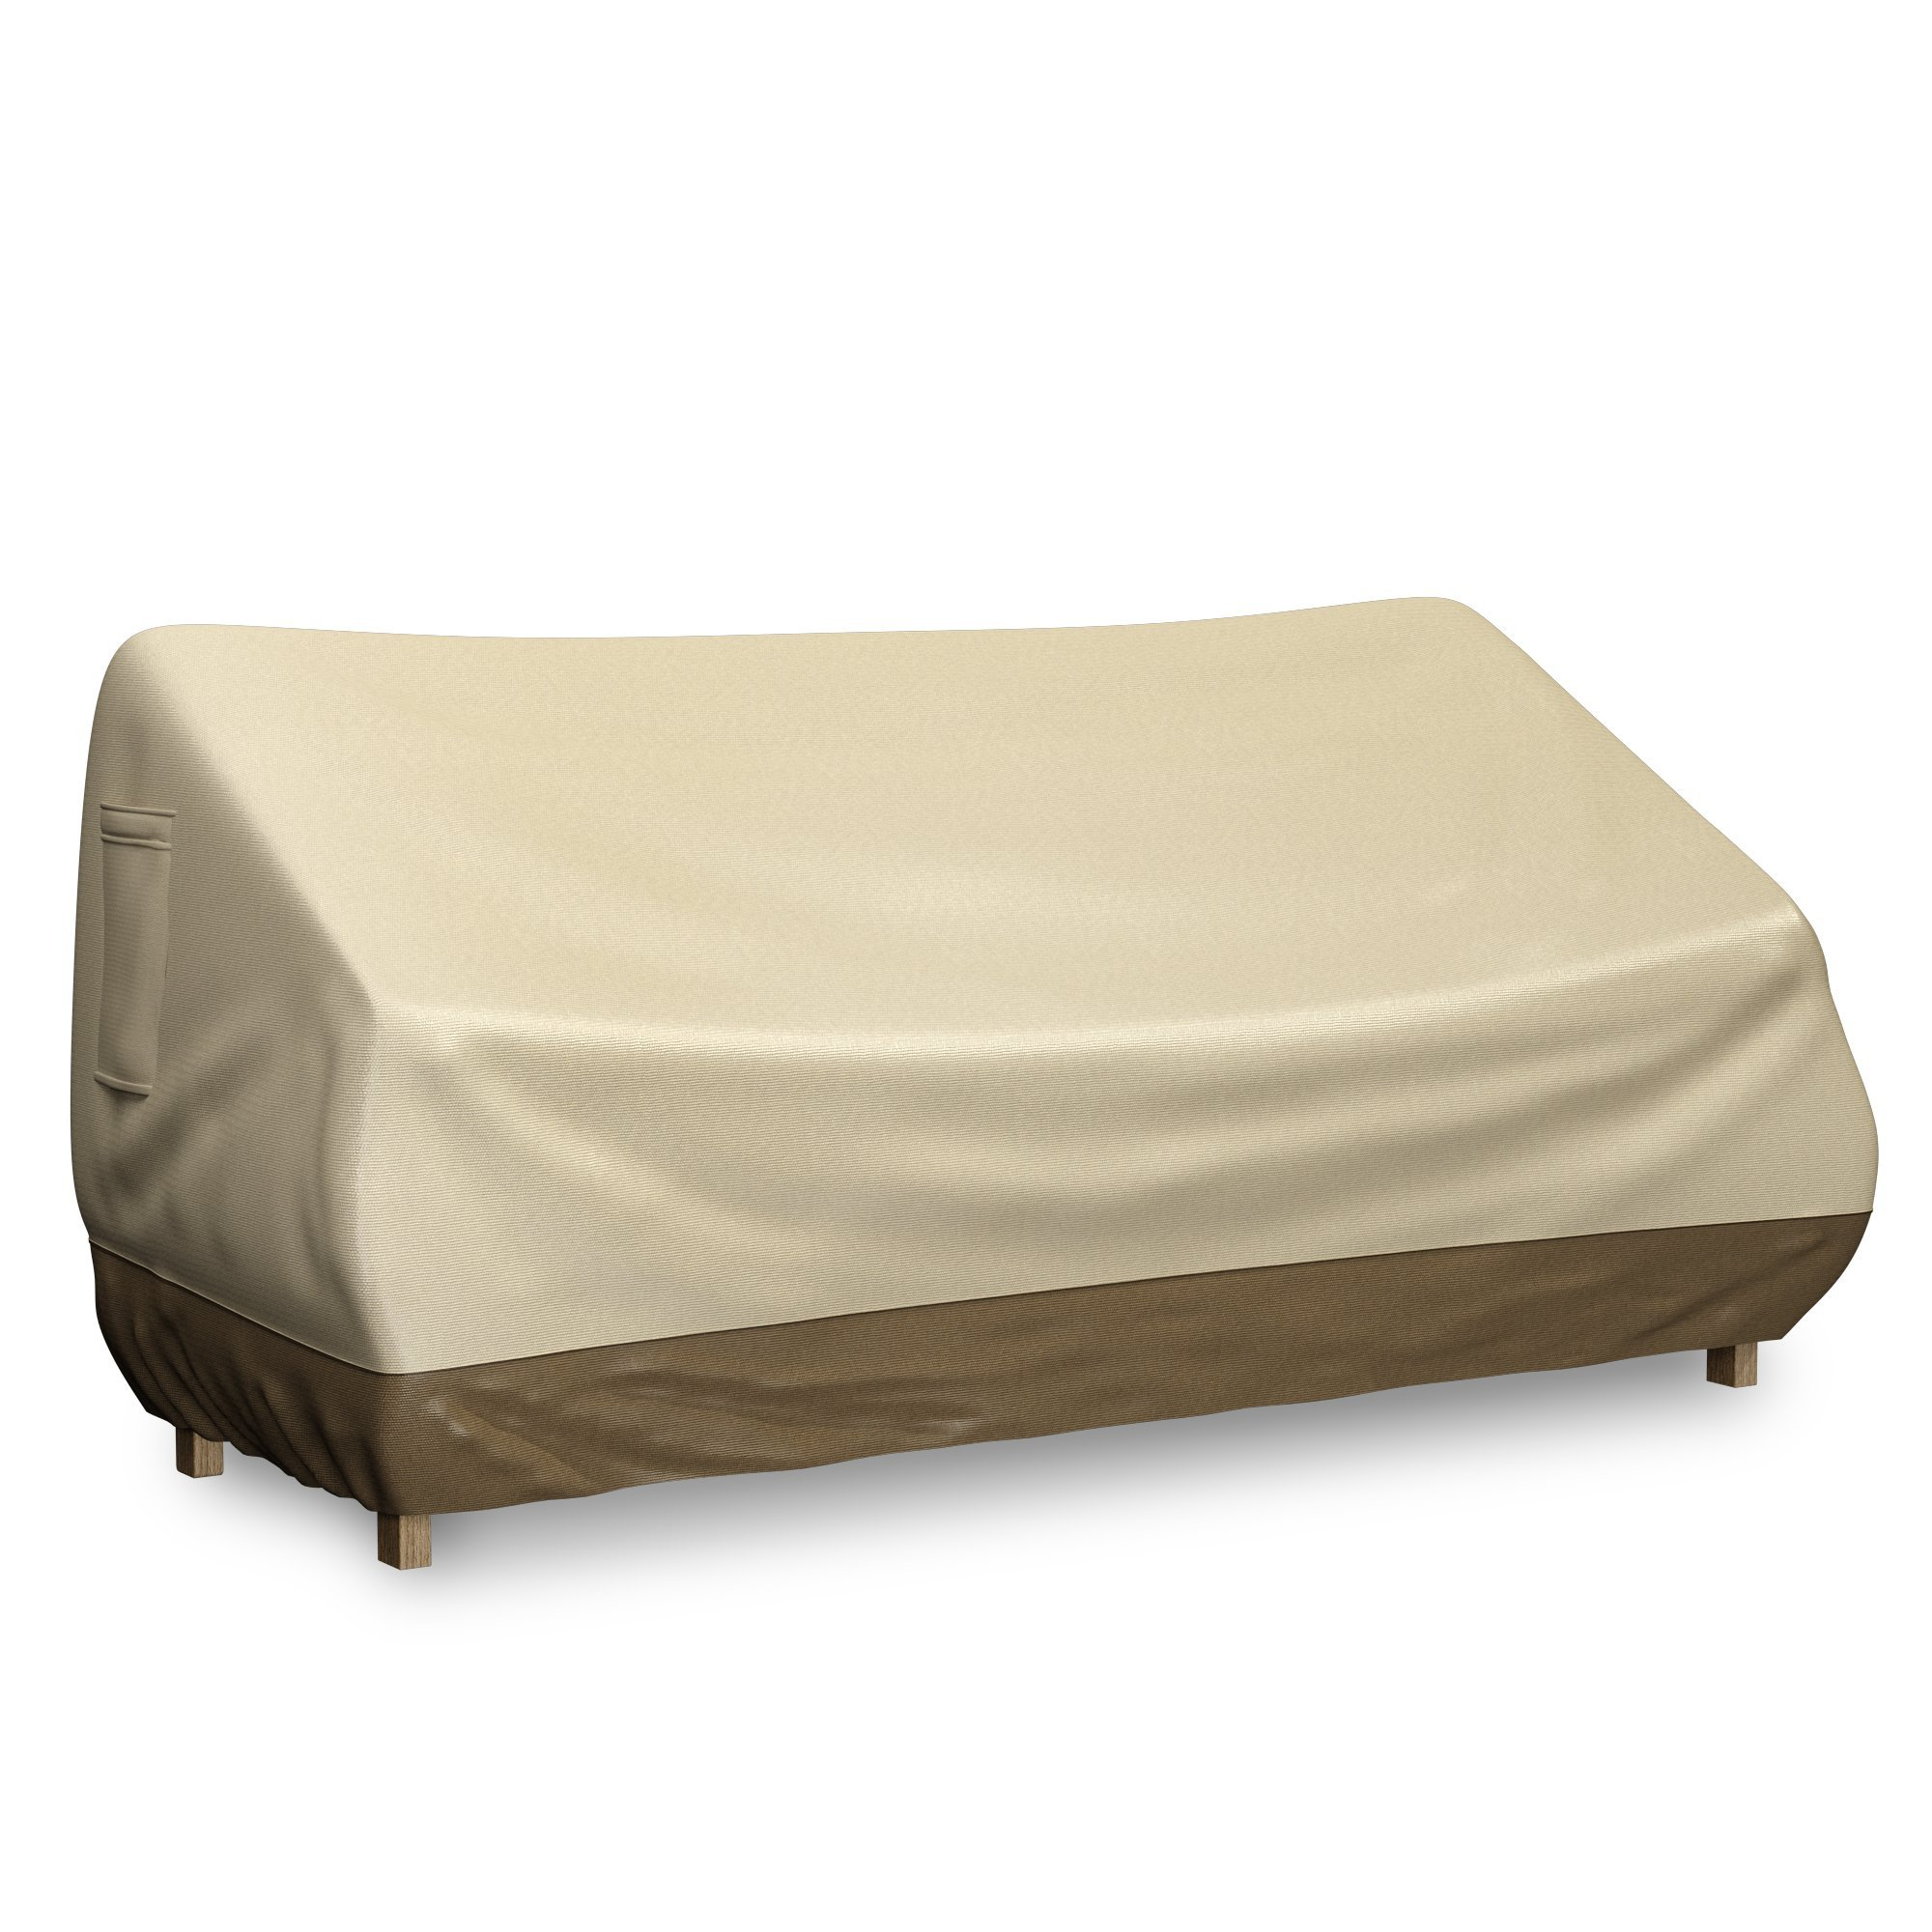 Home-Complete HC-4001 Outdoor Cover for Loveseat, Sofa, Bench-58 Inch Heavy Duty Water Resi